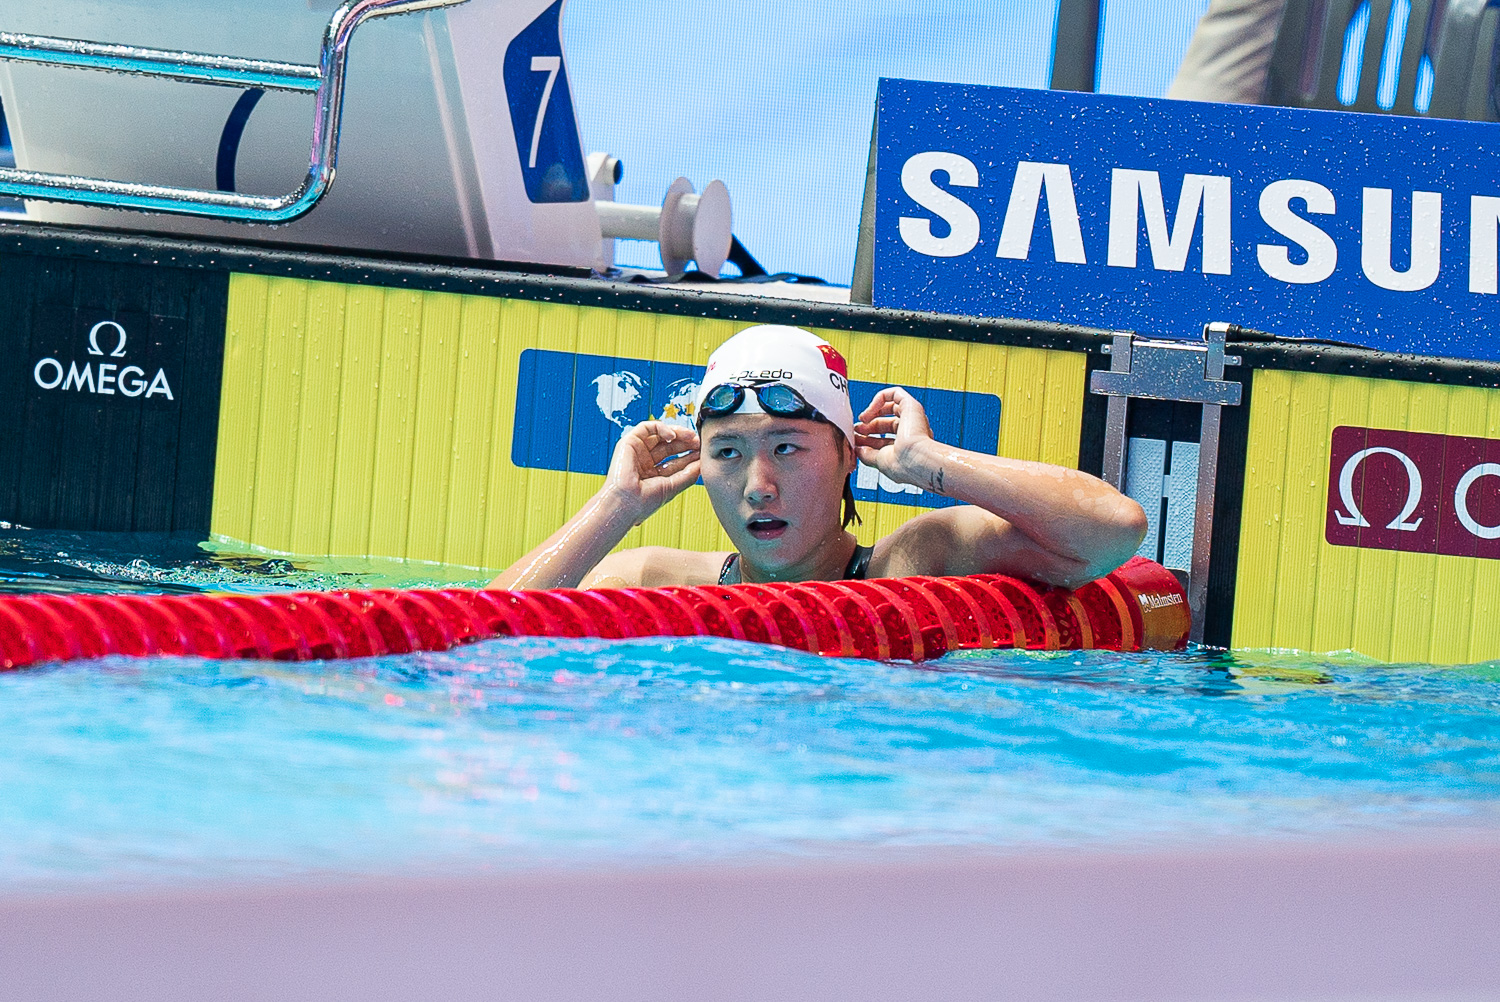 Wang Shun, Ye Shiwen Cruise to Titles at Chinese National Swimming Championships